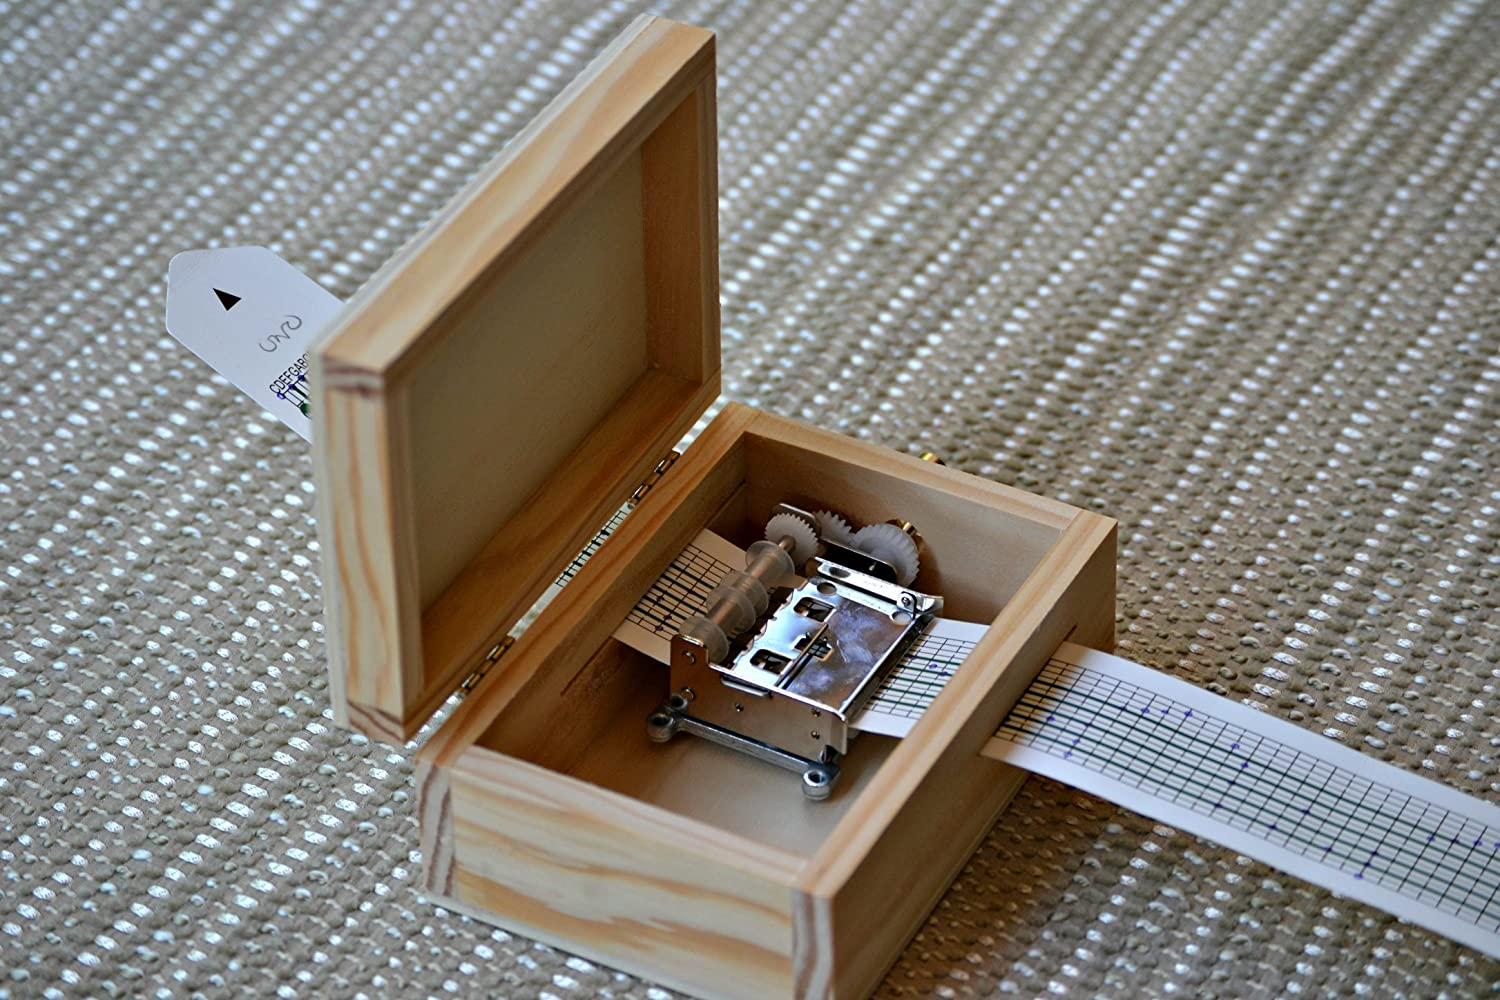 DIY (Do It Yourselve) Pack to make your very own music box. Great gift for music lovers. The pack contains: A blank wooden music box and a musical mechanism that you can personalize....